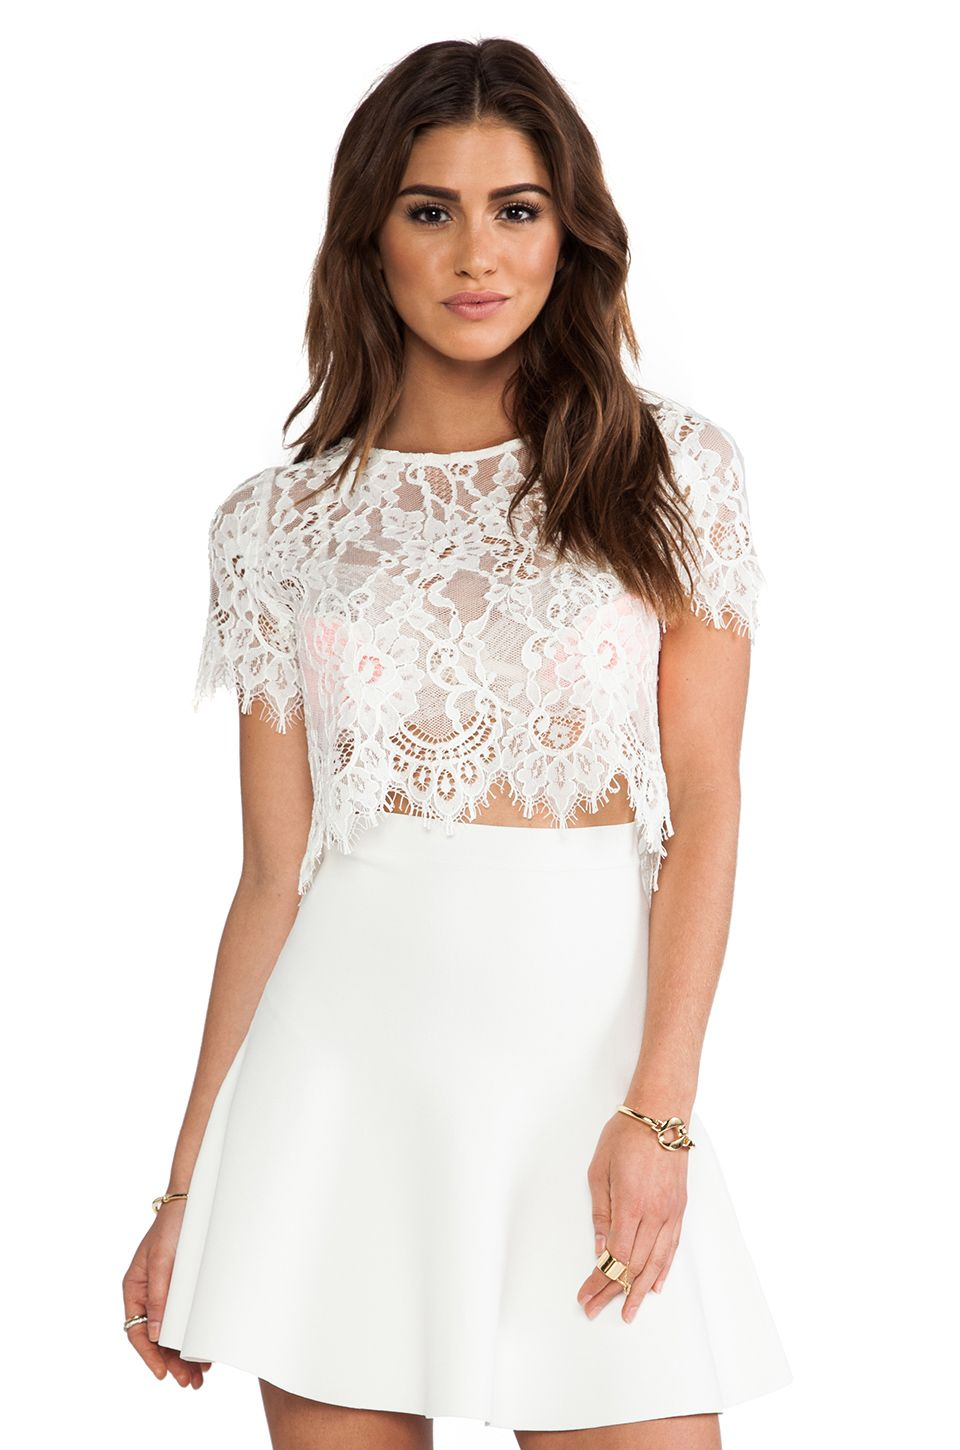 11ef2904f8a Alexis EXCLUSIVE Lisette Capped Sleeve Lace Crop Top in White from  REVOLVEclothing I love the top but I would pair it with the high waisted  shorts